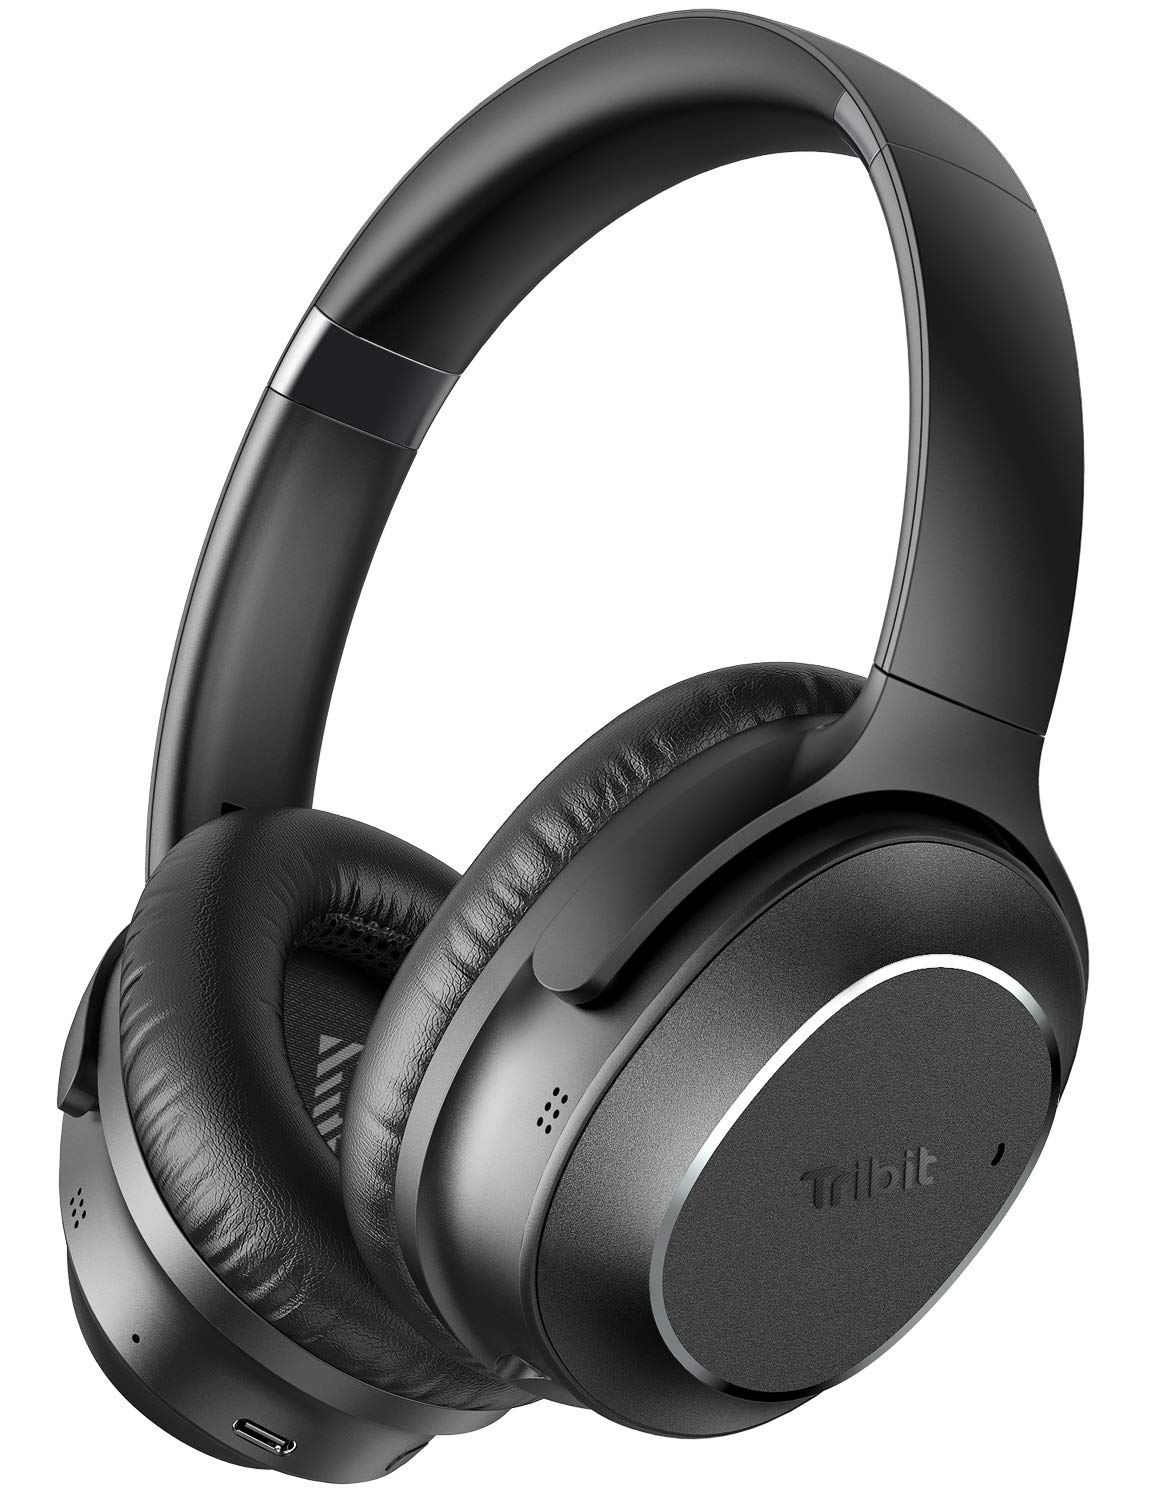 Tribit QuietPlus 72 Bluetooth Headphones Image